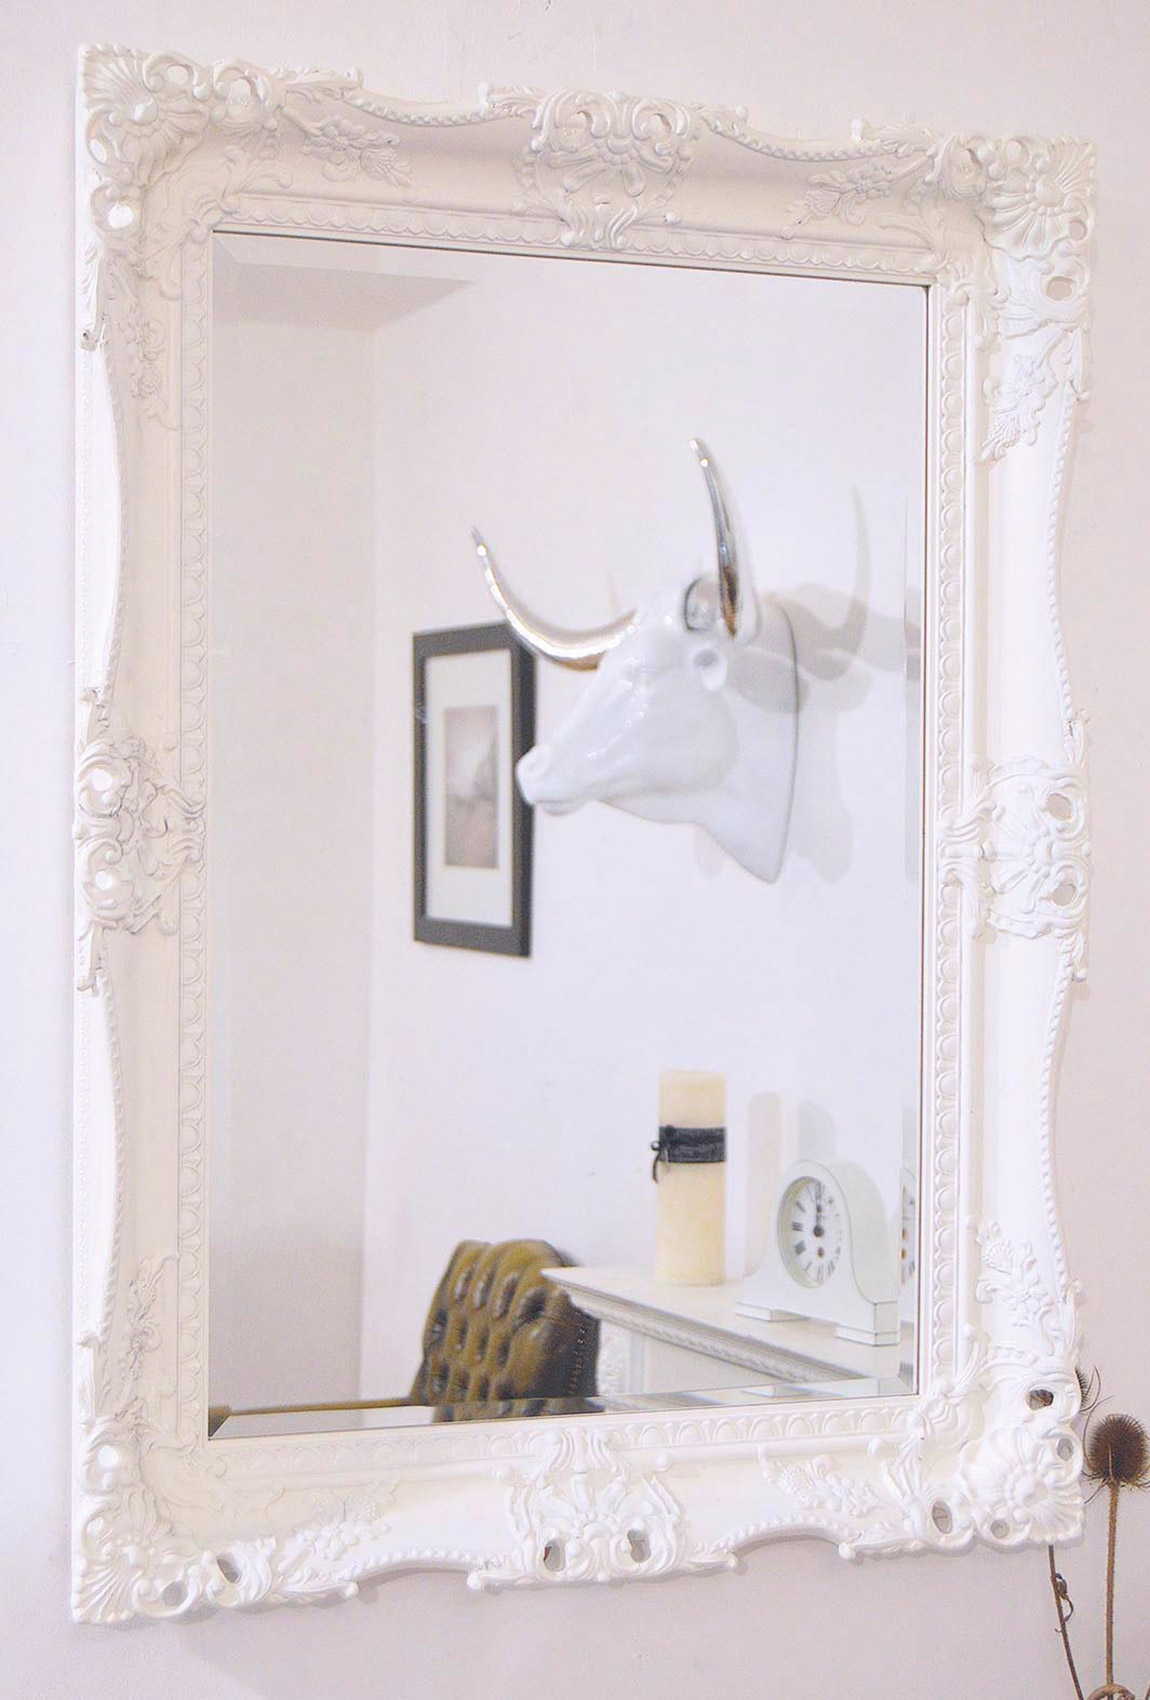 Elaborate White Carved Ornate Swept Frame Mirror 95cm X 80cm Regarding Large White Ornate Mirror (Image 5 of 15)